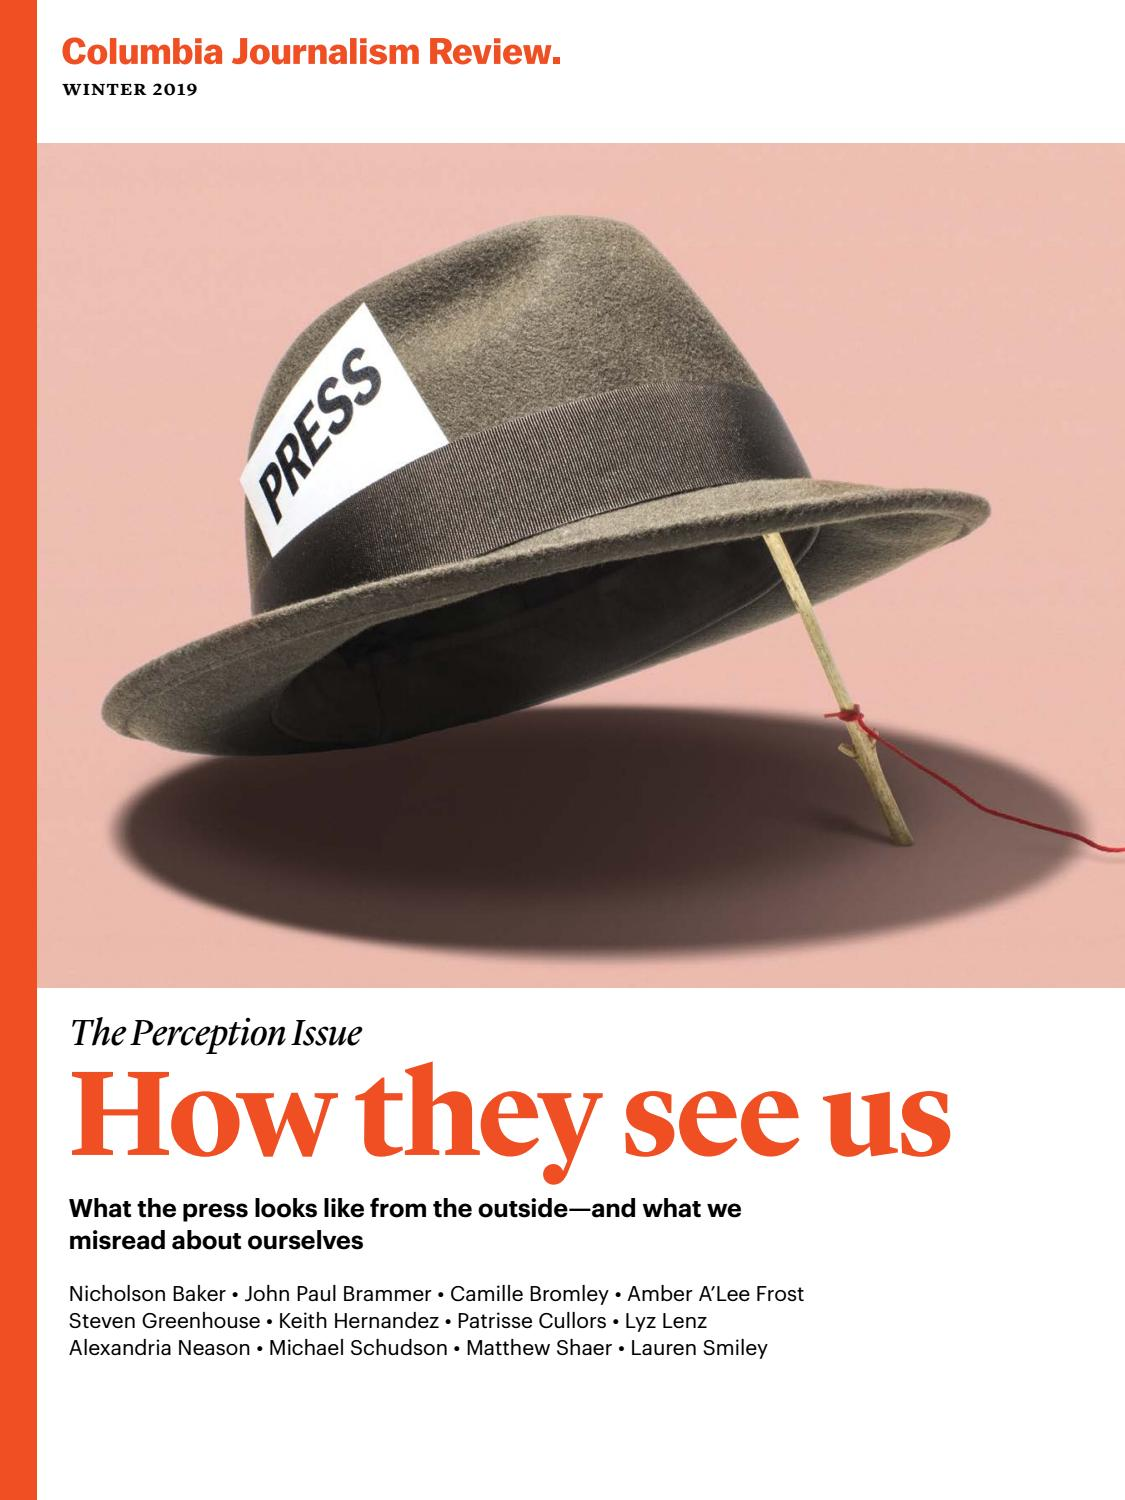 Winter 2019: The Perception Issue by Columbia Journalism Review - issuu